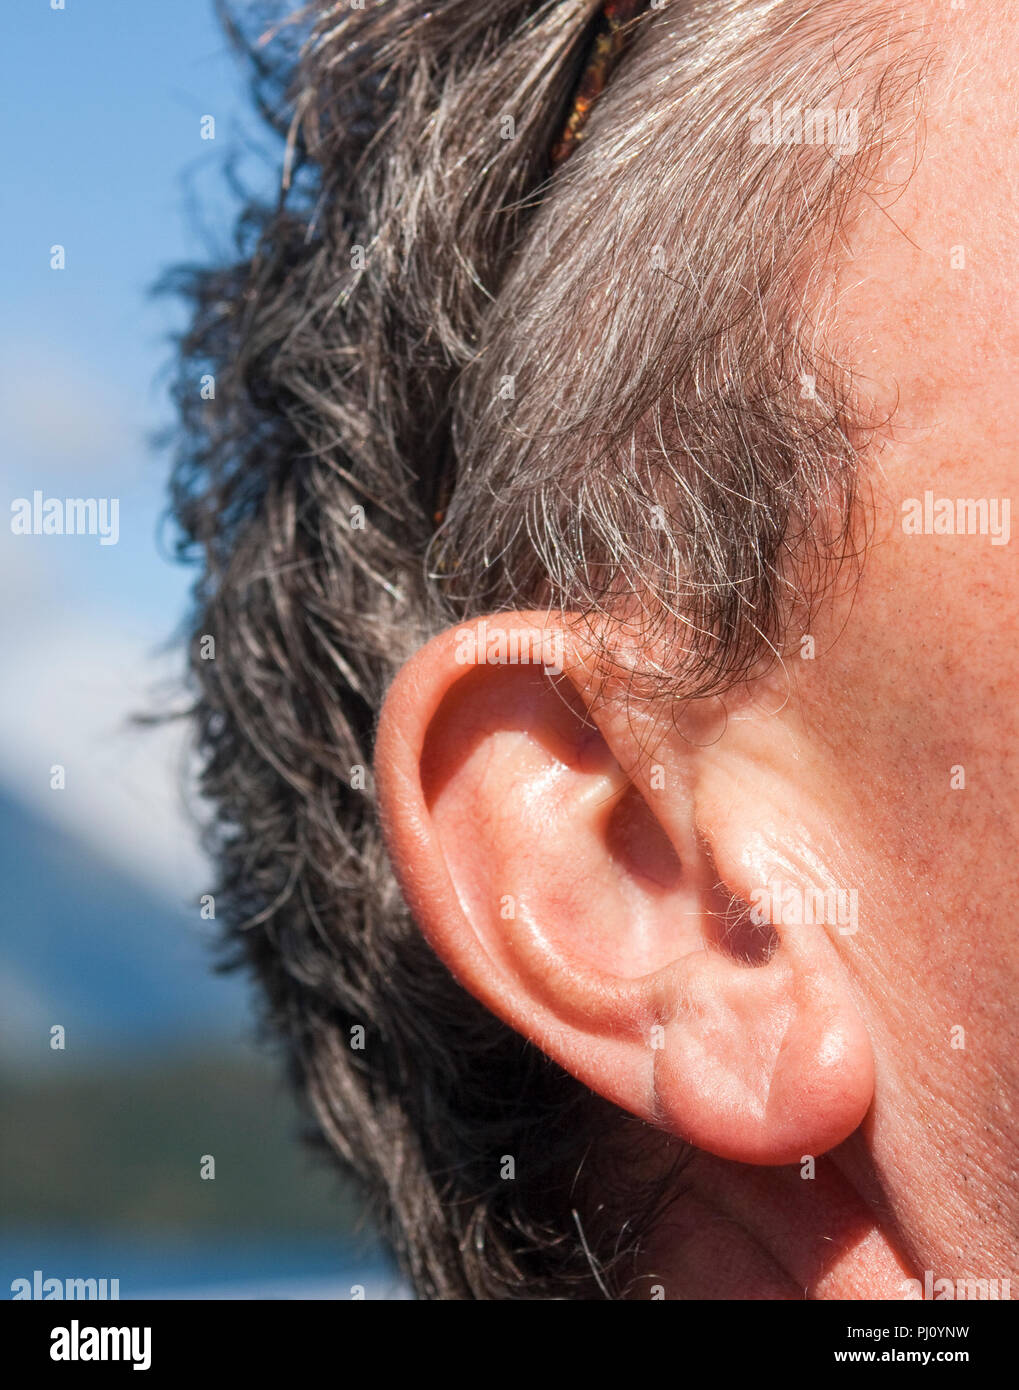 Face of man with focus on ear - Stock Image